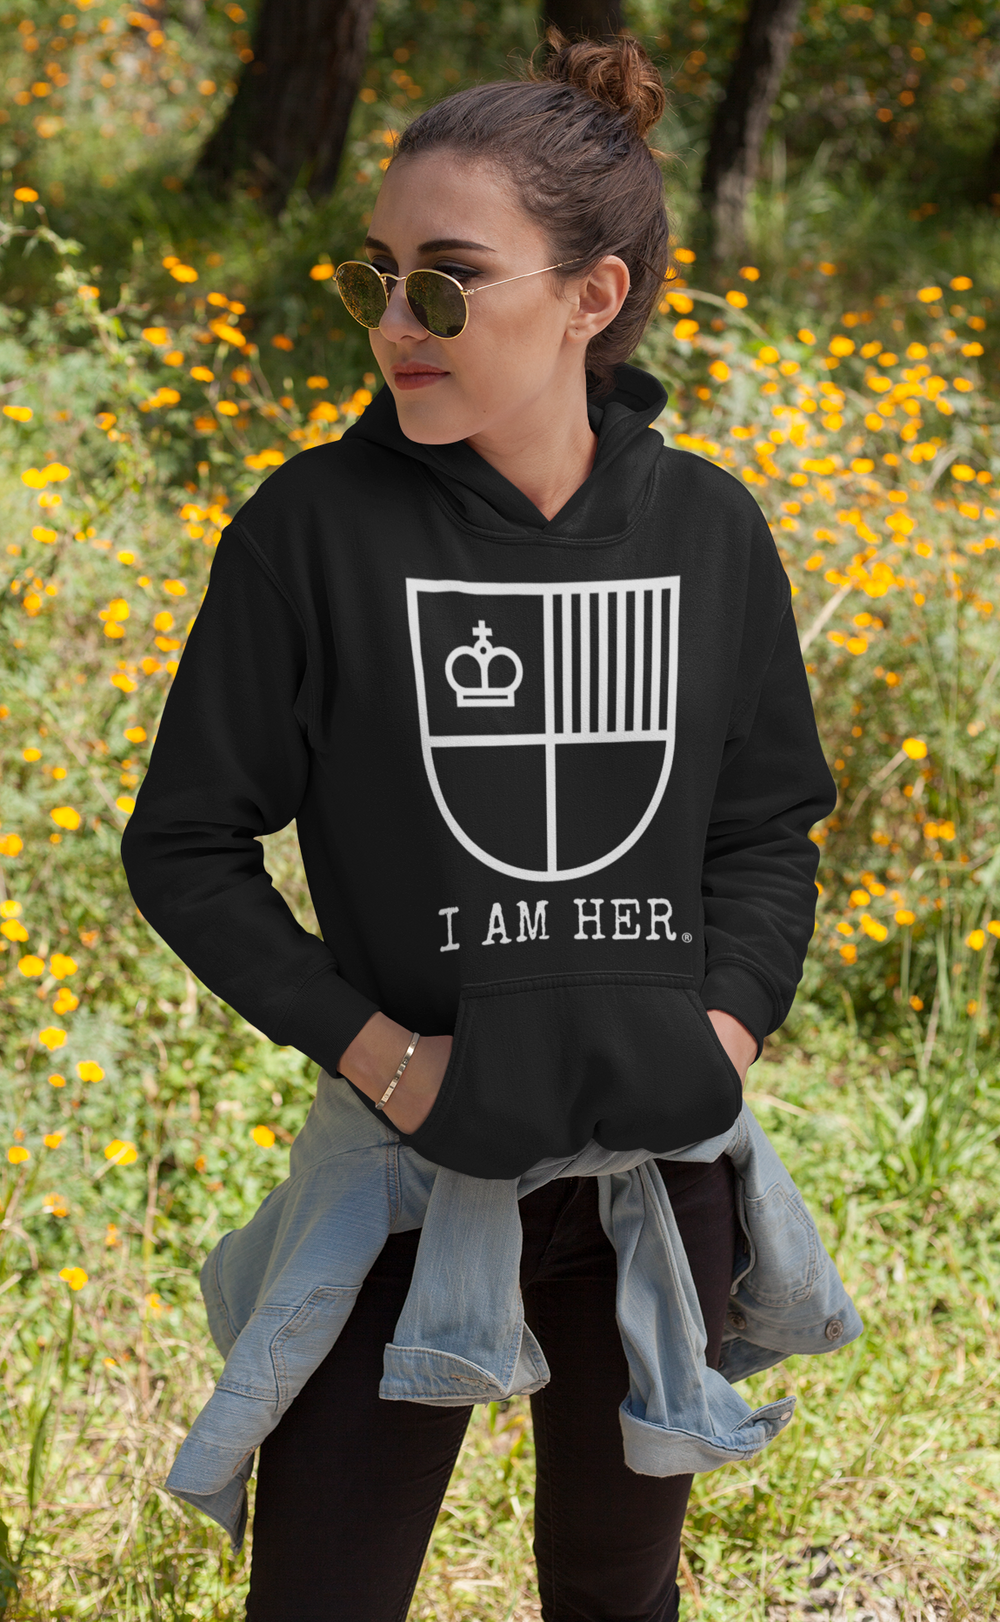 """I AM HER"" Shield Women's Hooded Sweatshirt - Black/White - I AM HER Apparel, LLC"